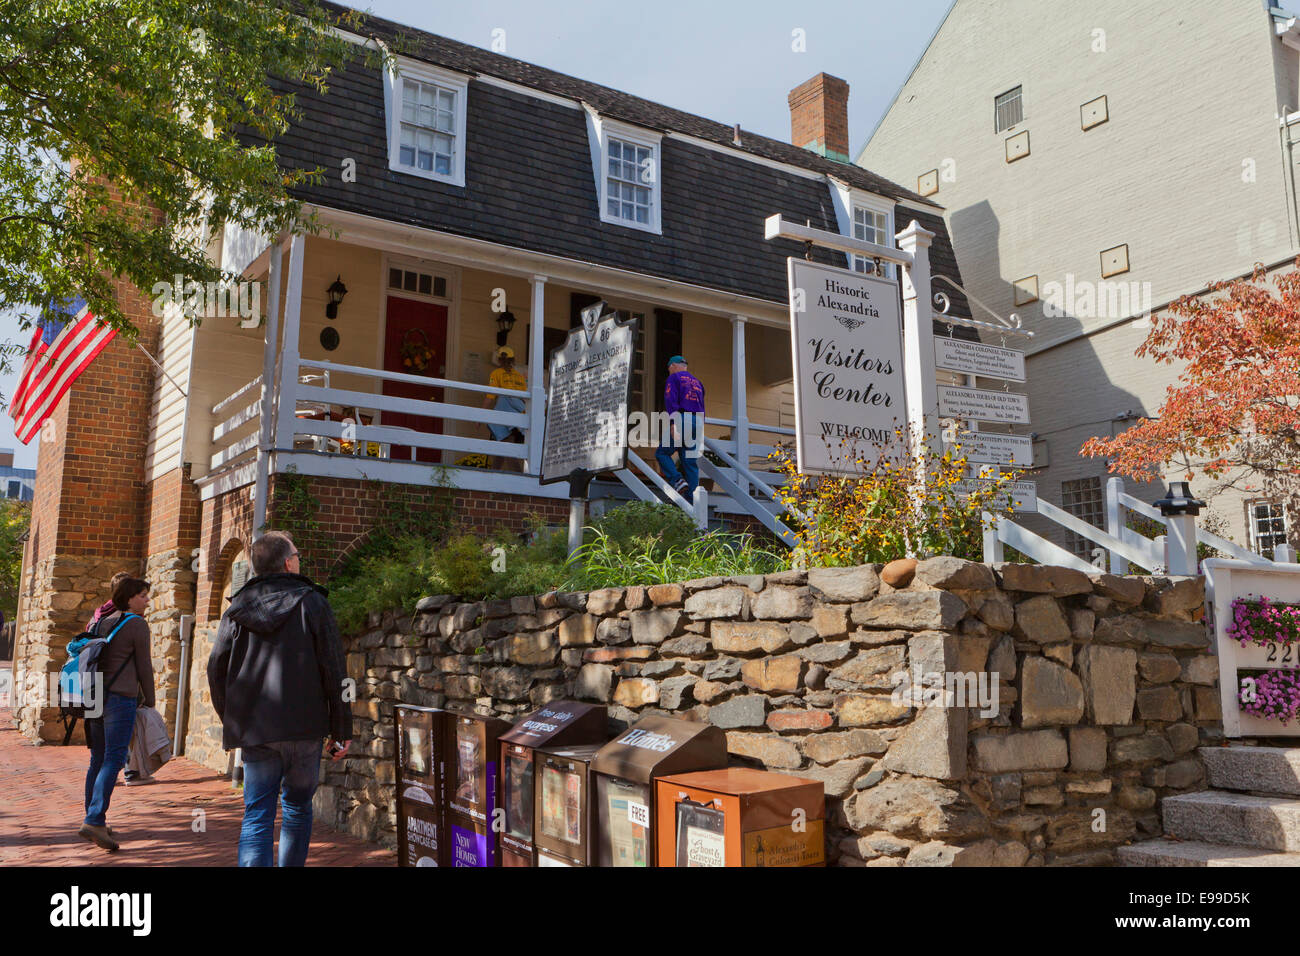 Old Town Alexandria visitors center - Virginia USA Stock Photo